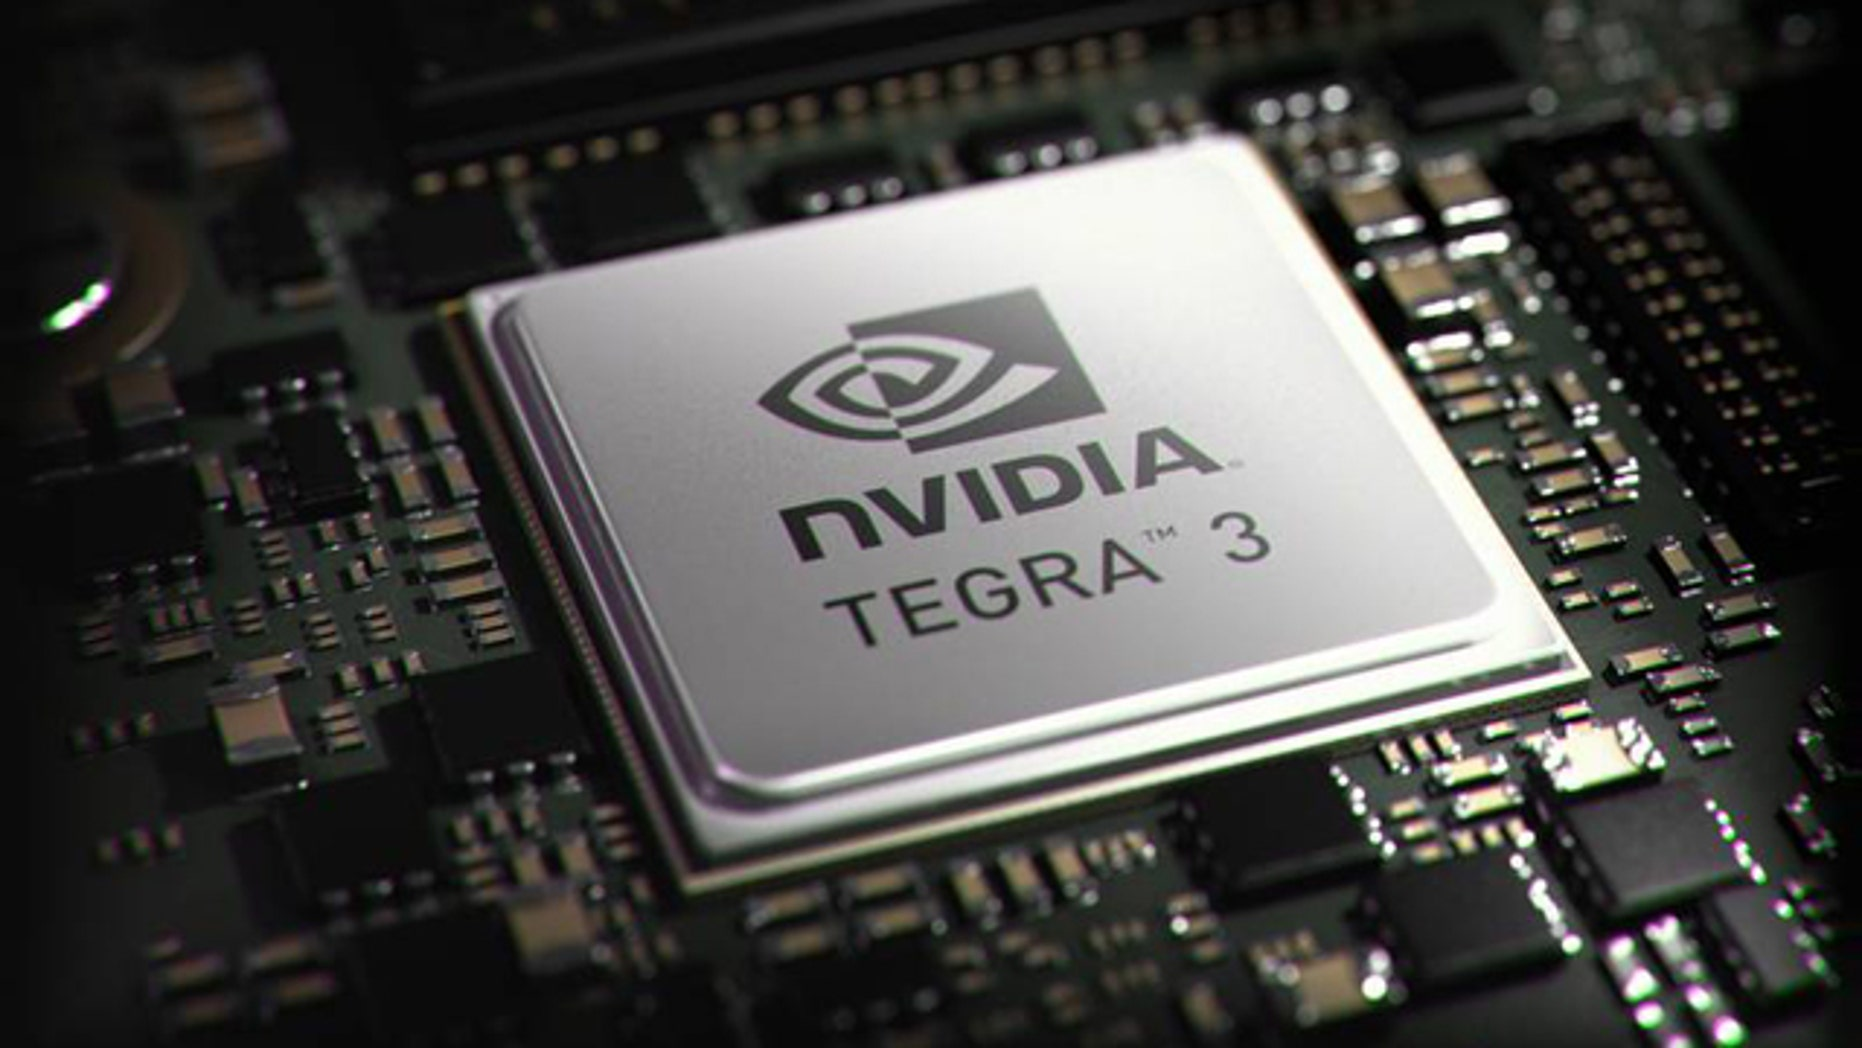 Nov. 8, 2011: The new four-core Tegra 3 chip from nVidia promises faster tablet computing in the future.